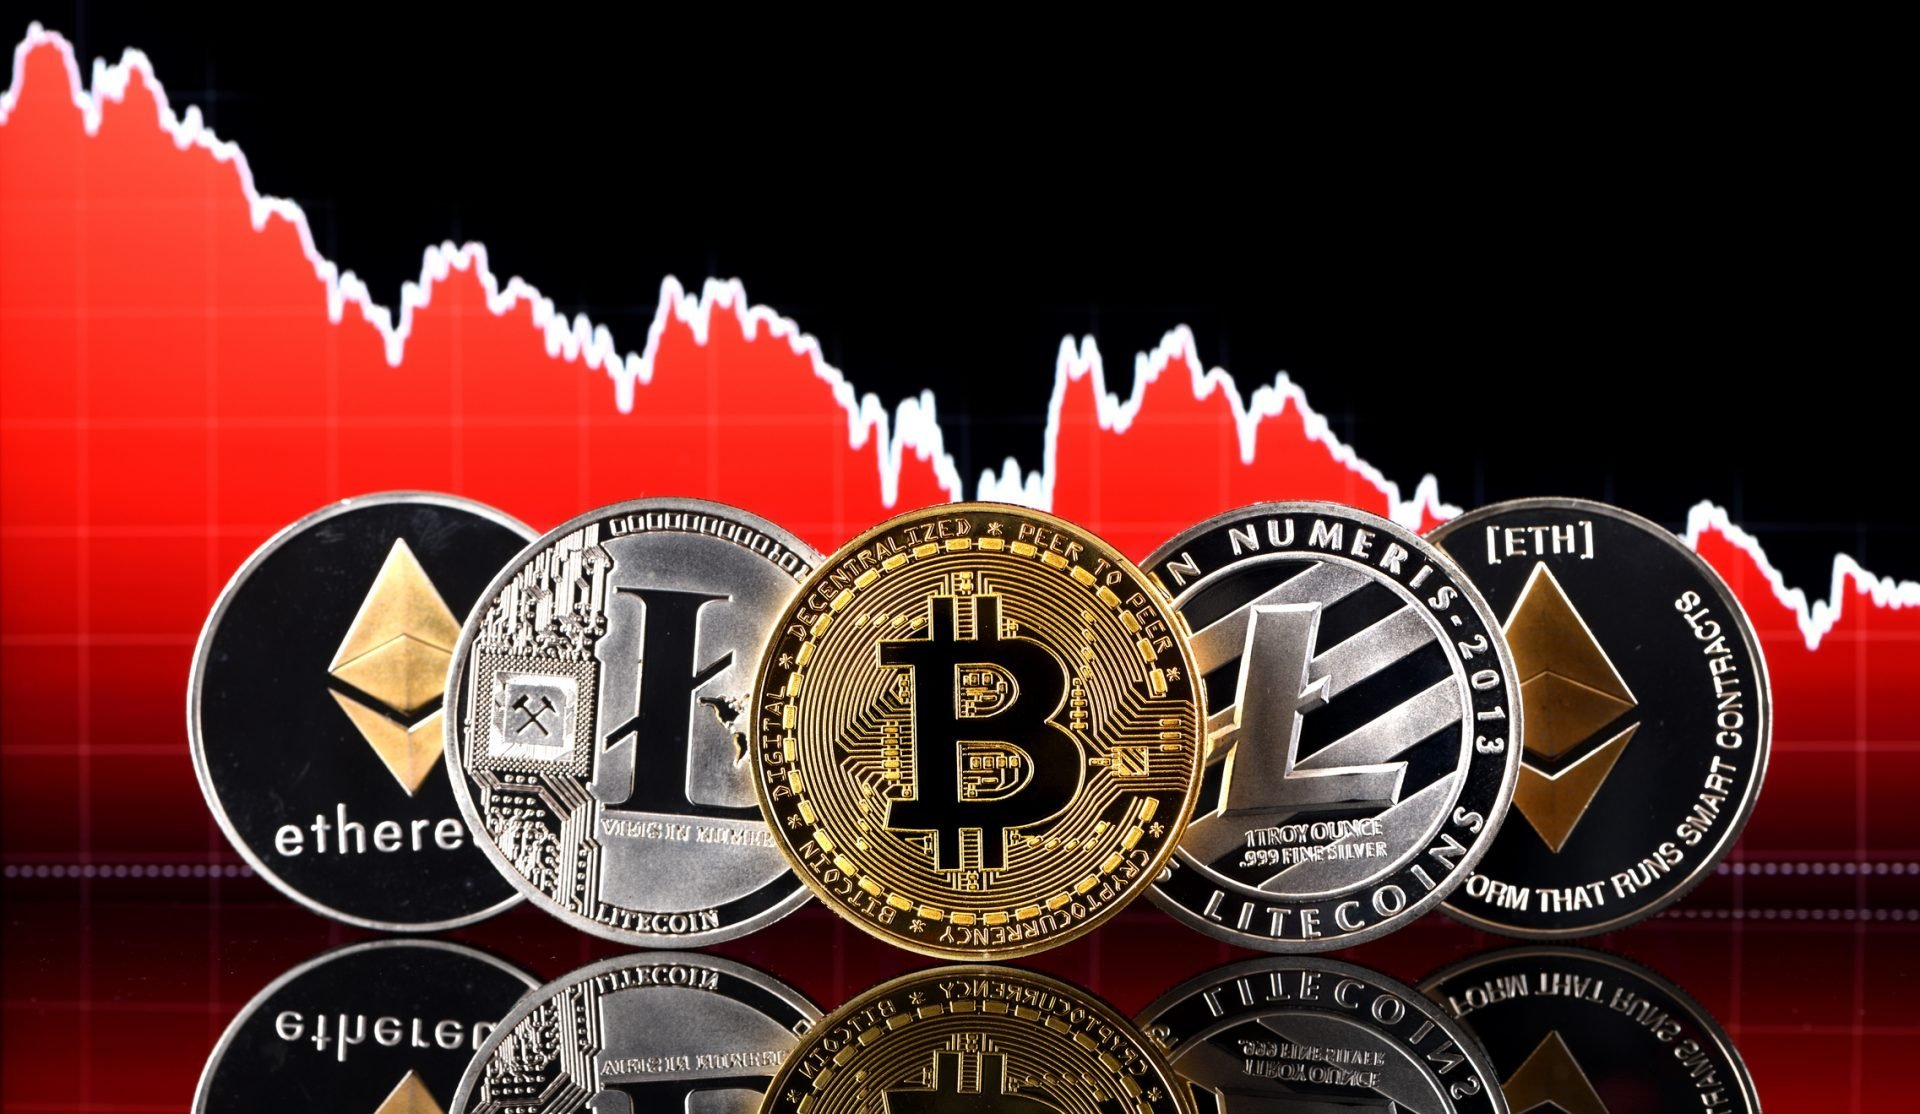 Is crypto too big of a risk?